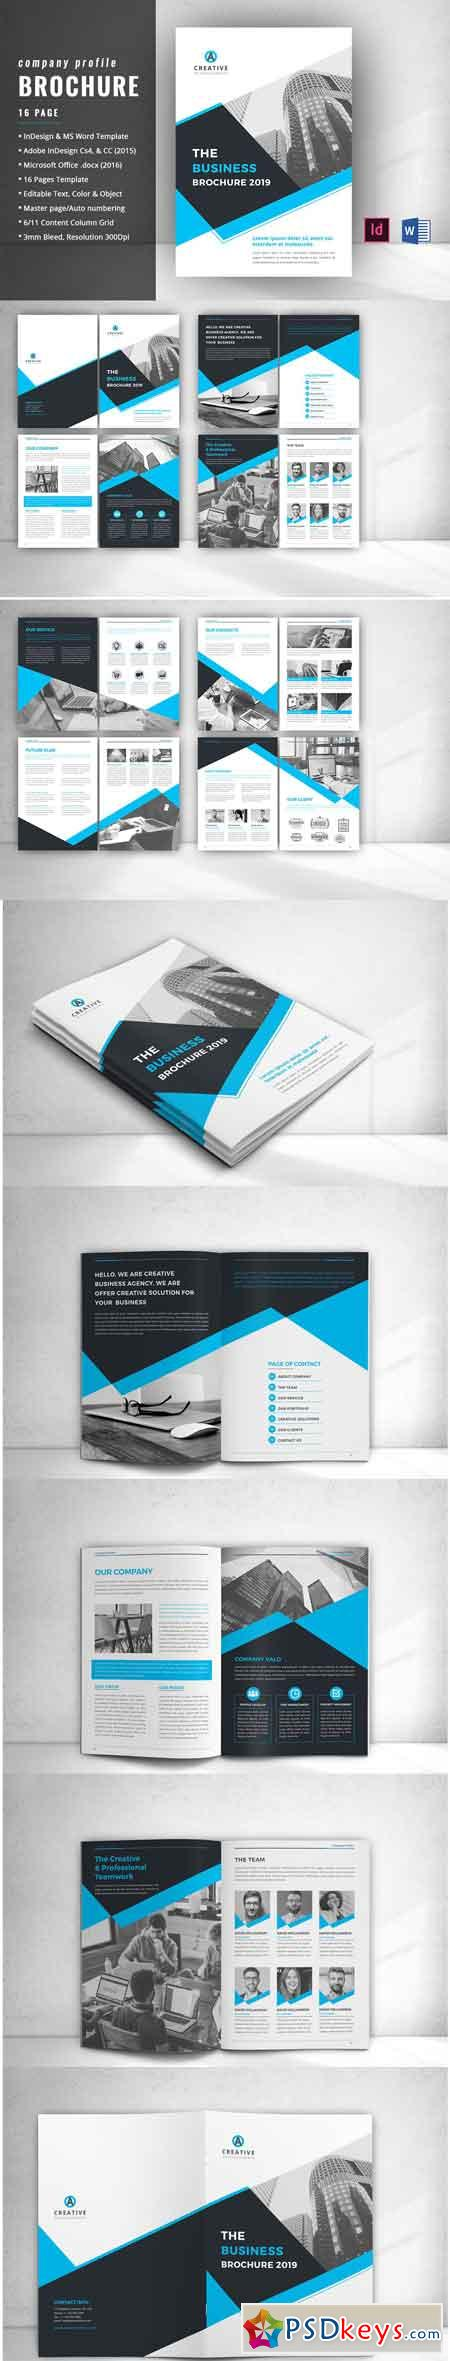 The Business Brochure 3386760